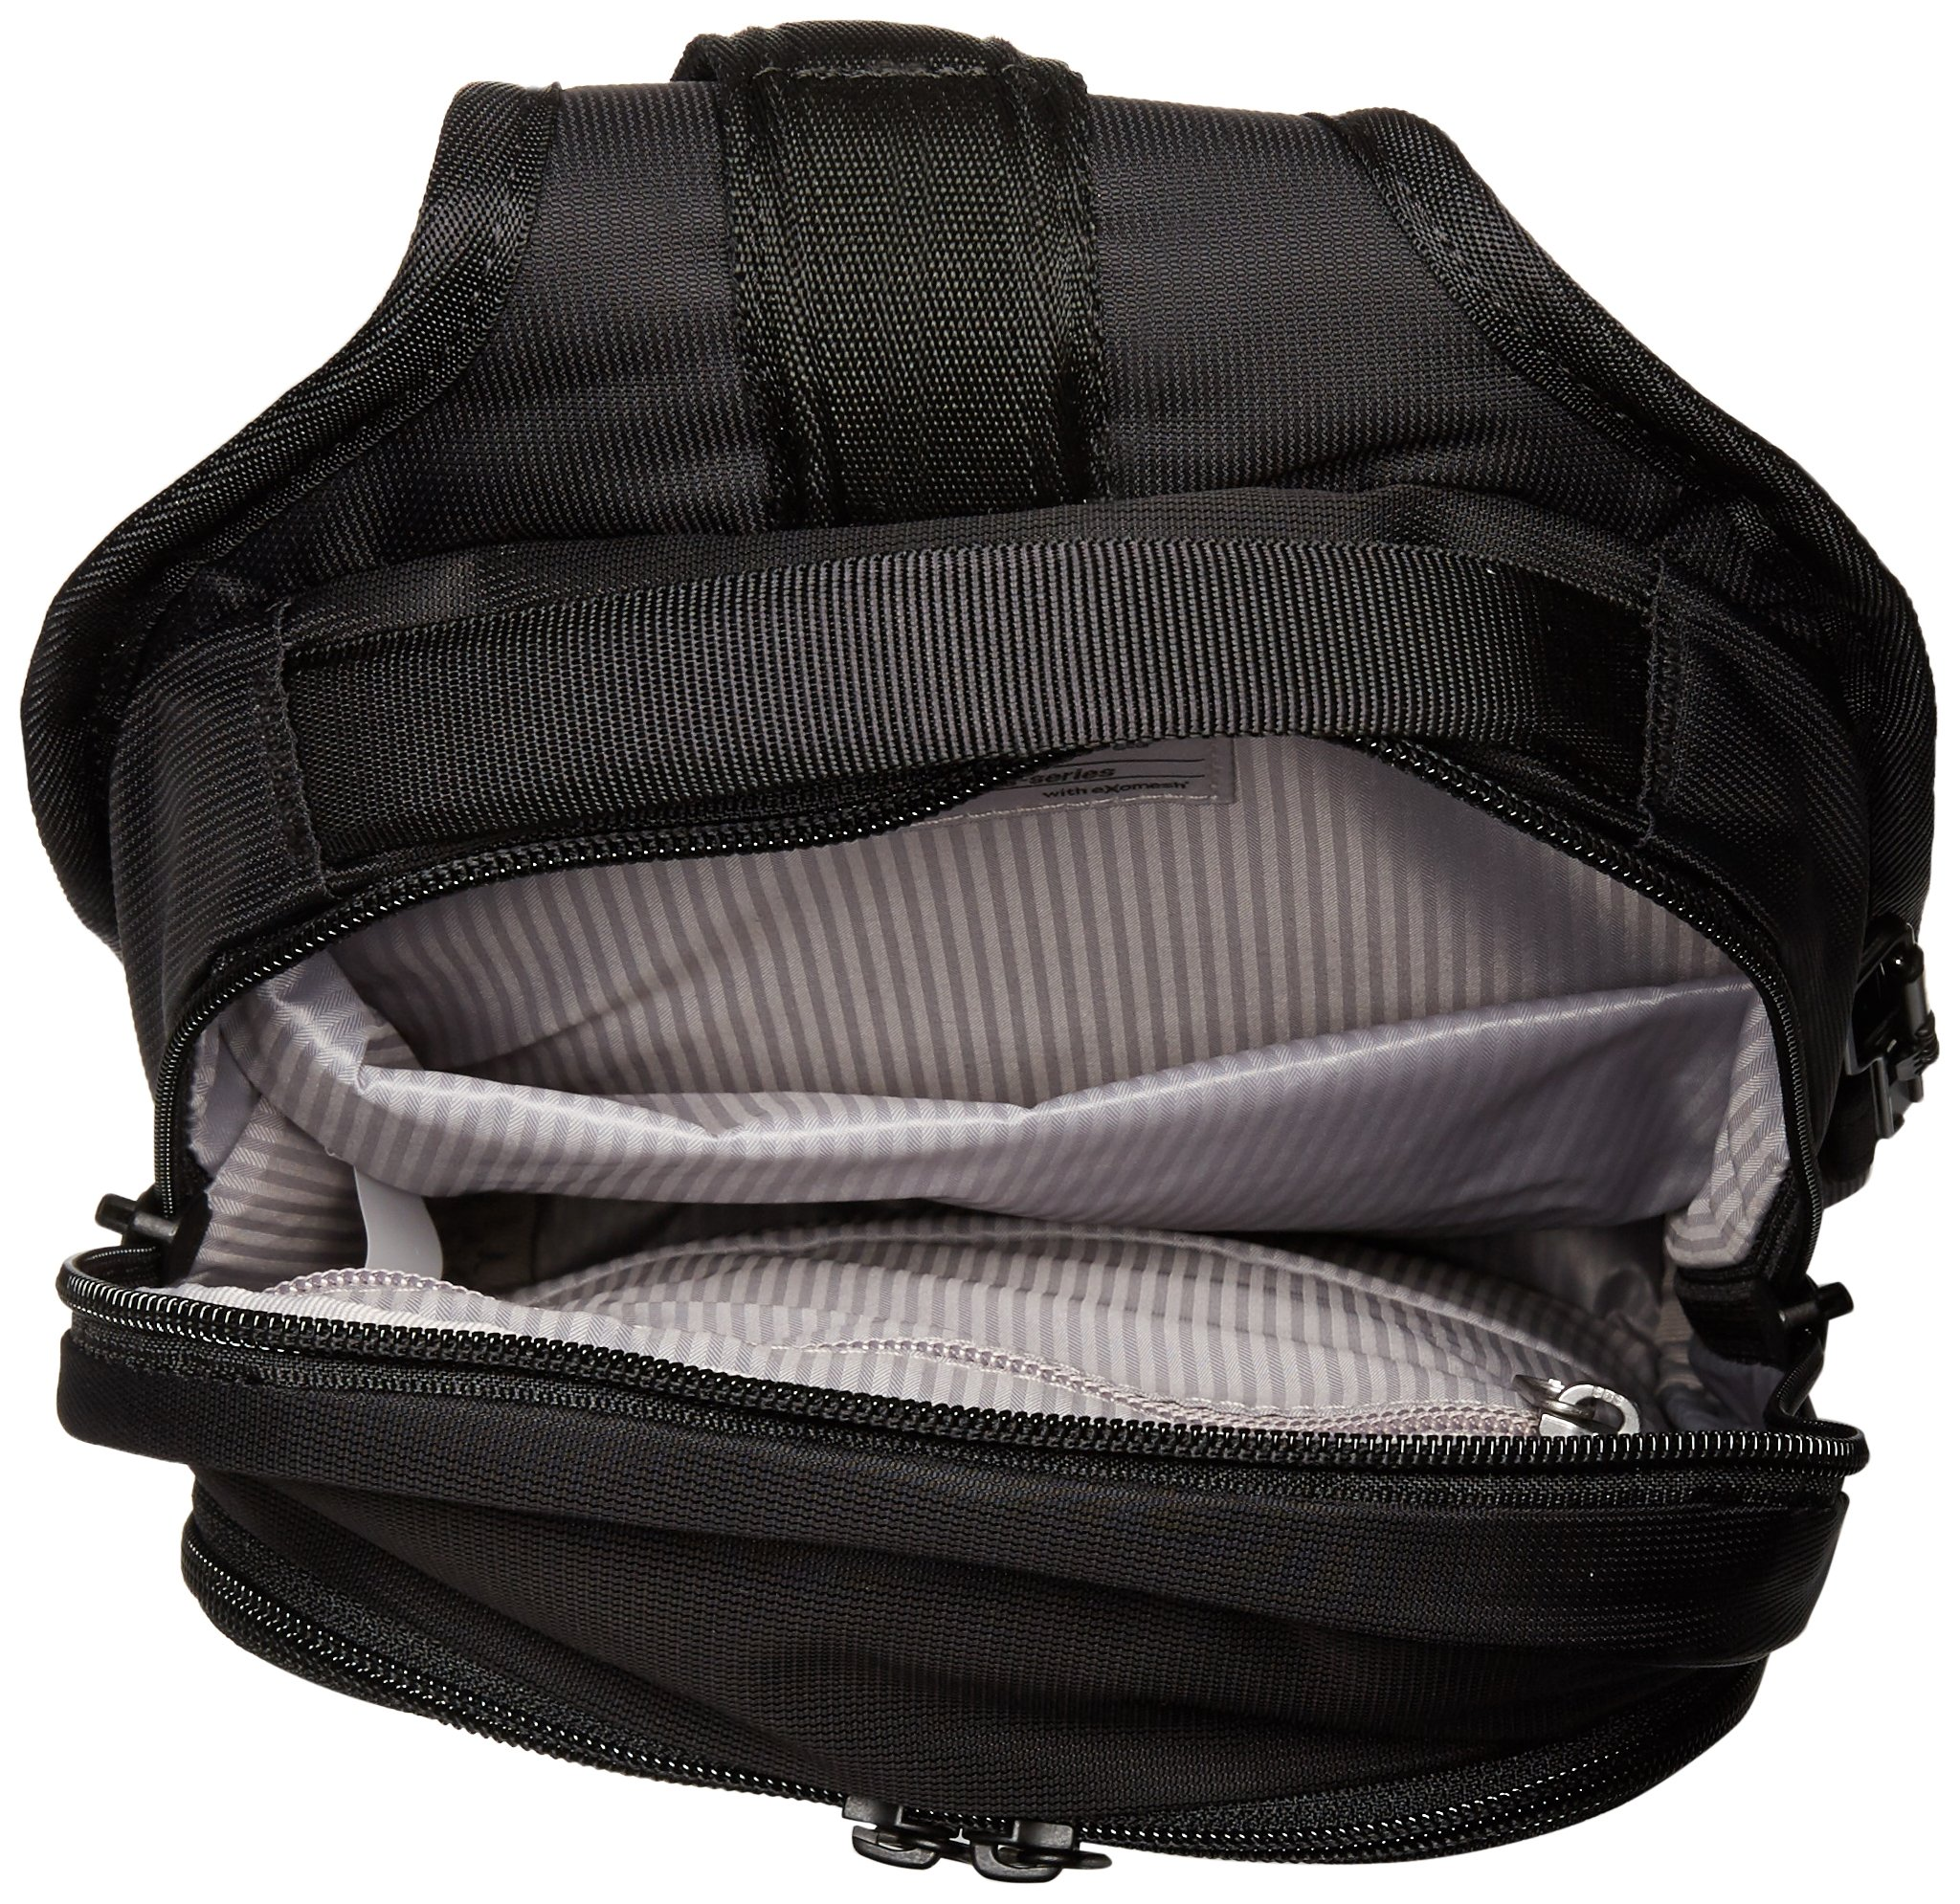 Pacsafe Metrosafe LS150 Anti-Theft Sling Backpack, Black by Pacsafe (Image #4)